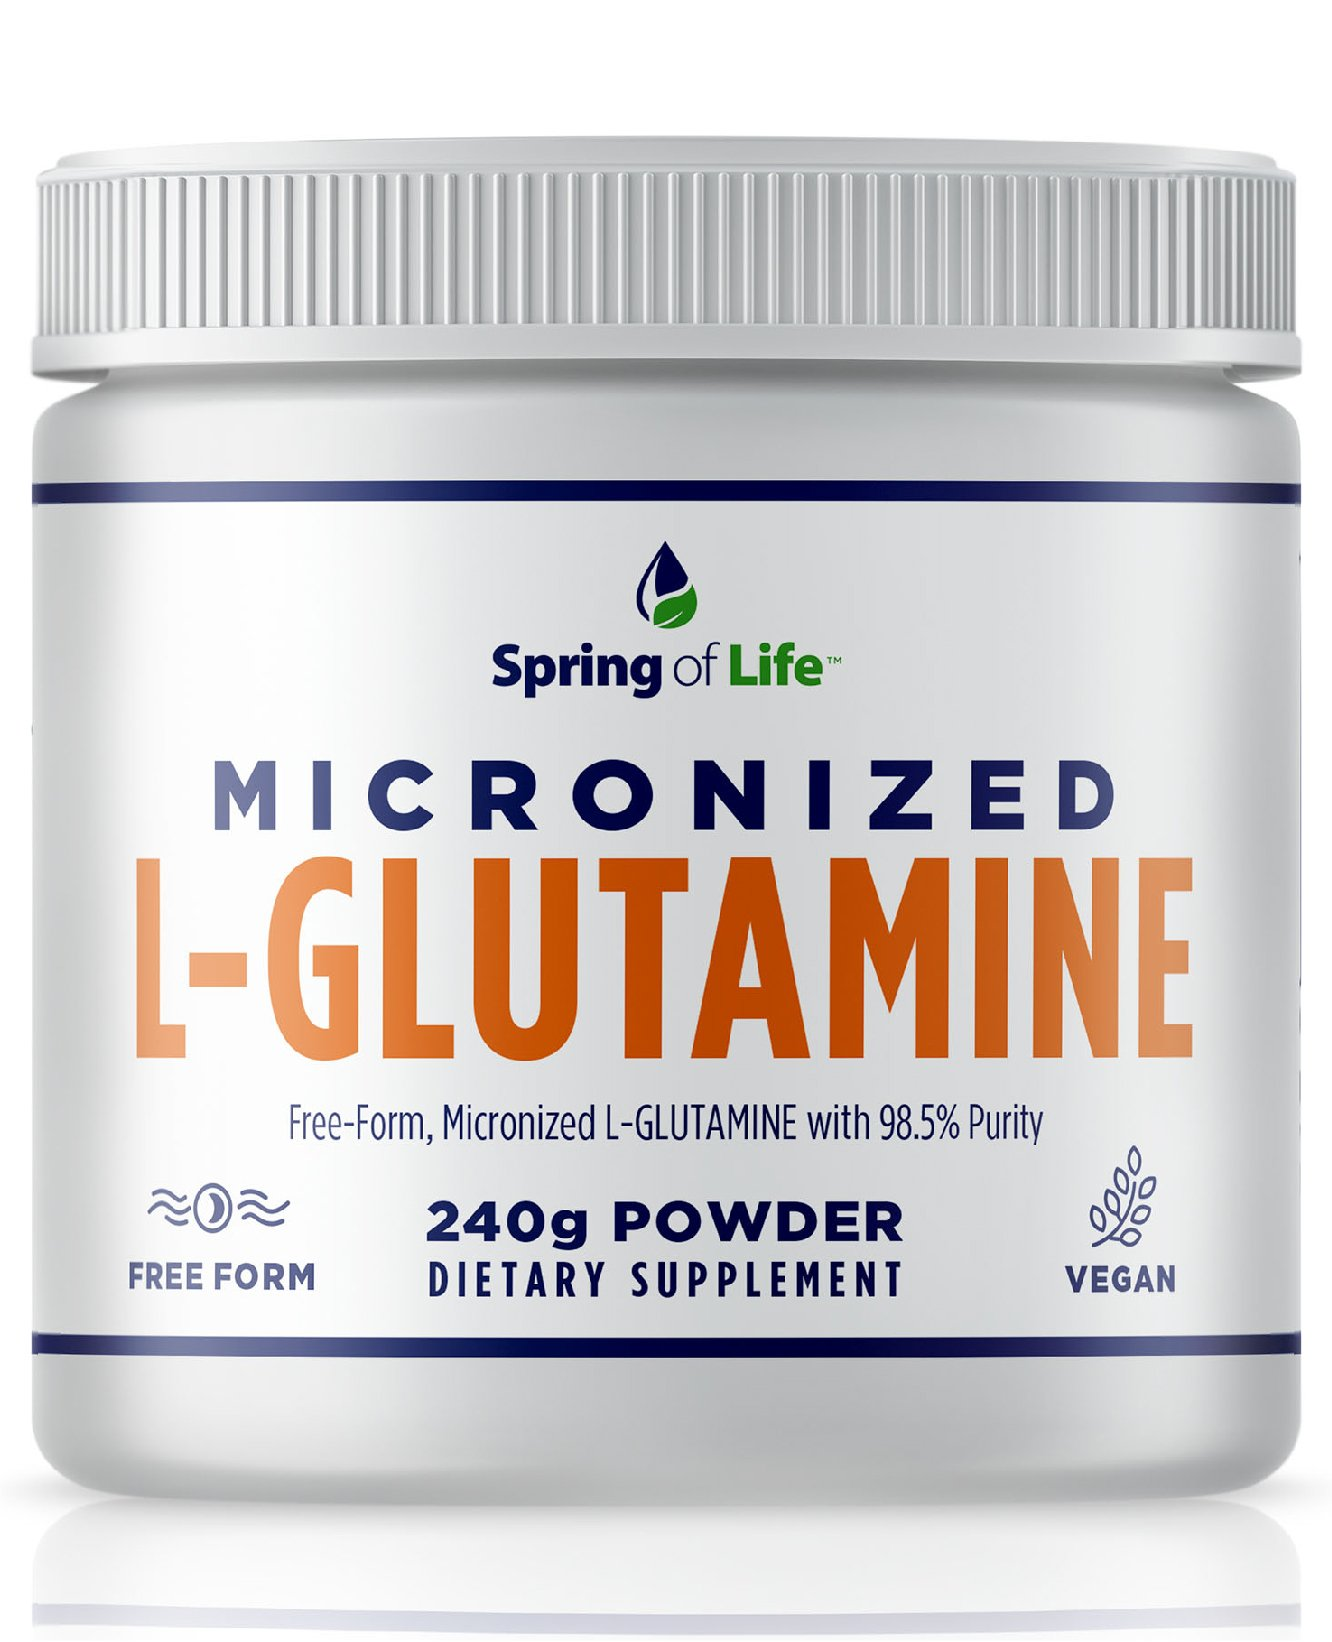 Spring of Life Micronized L-Glutamine, Free-Form 98.5% Purity, Gluten Free, micronized for Maximum Absorption, 240 Grams